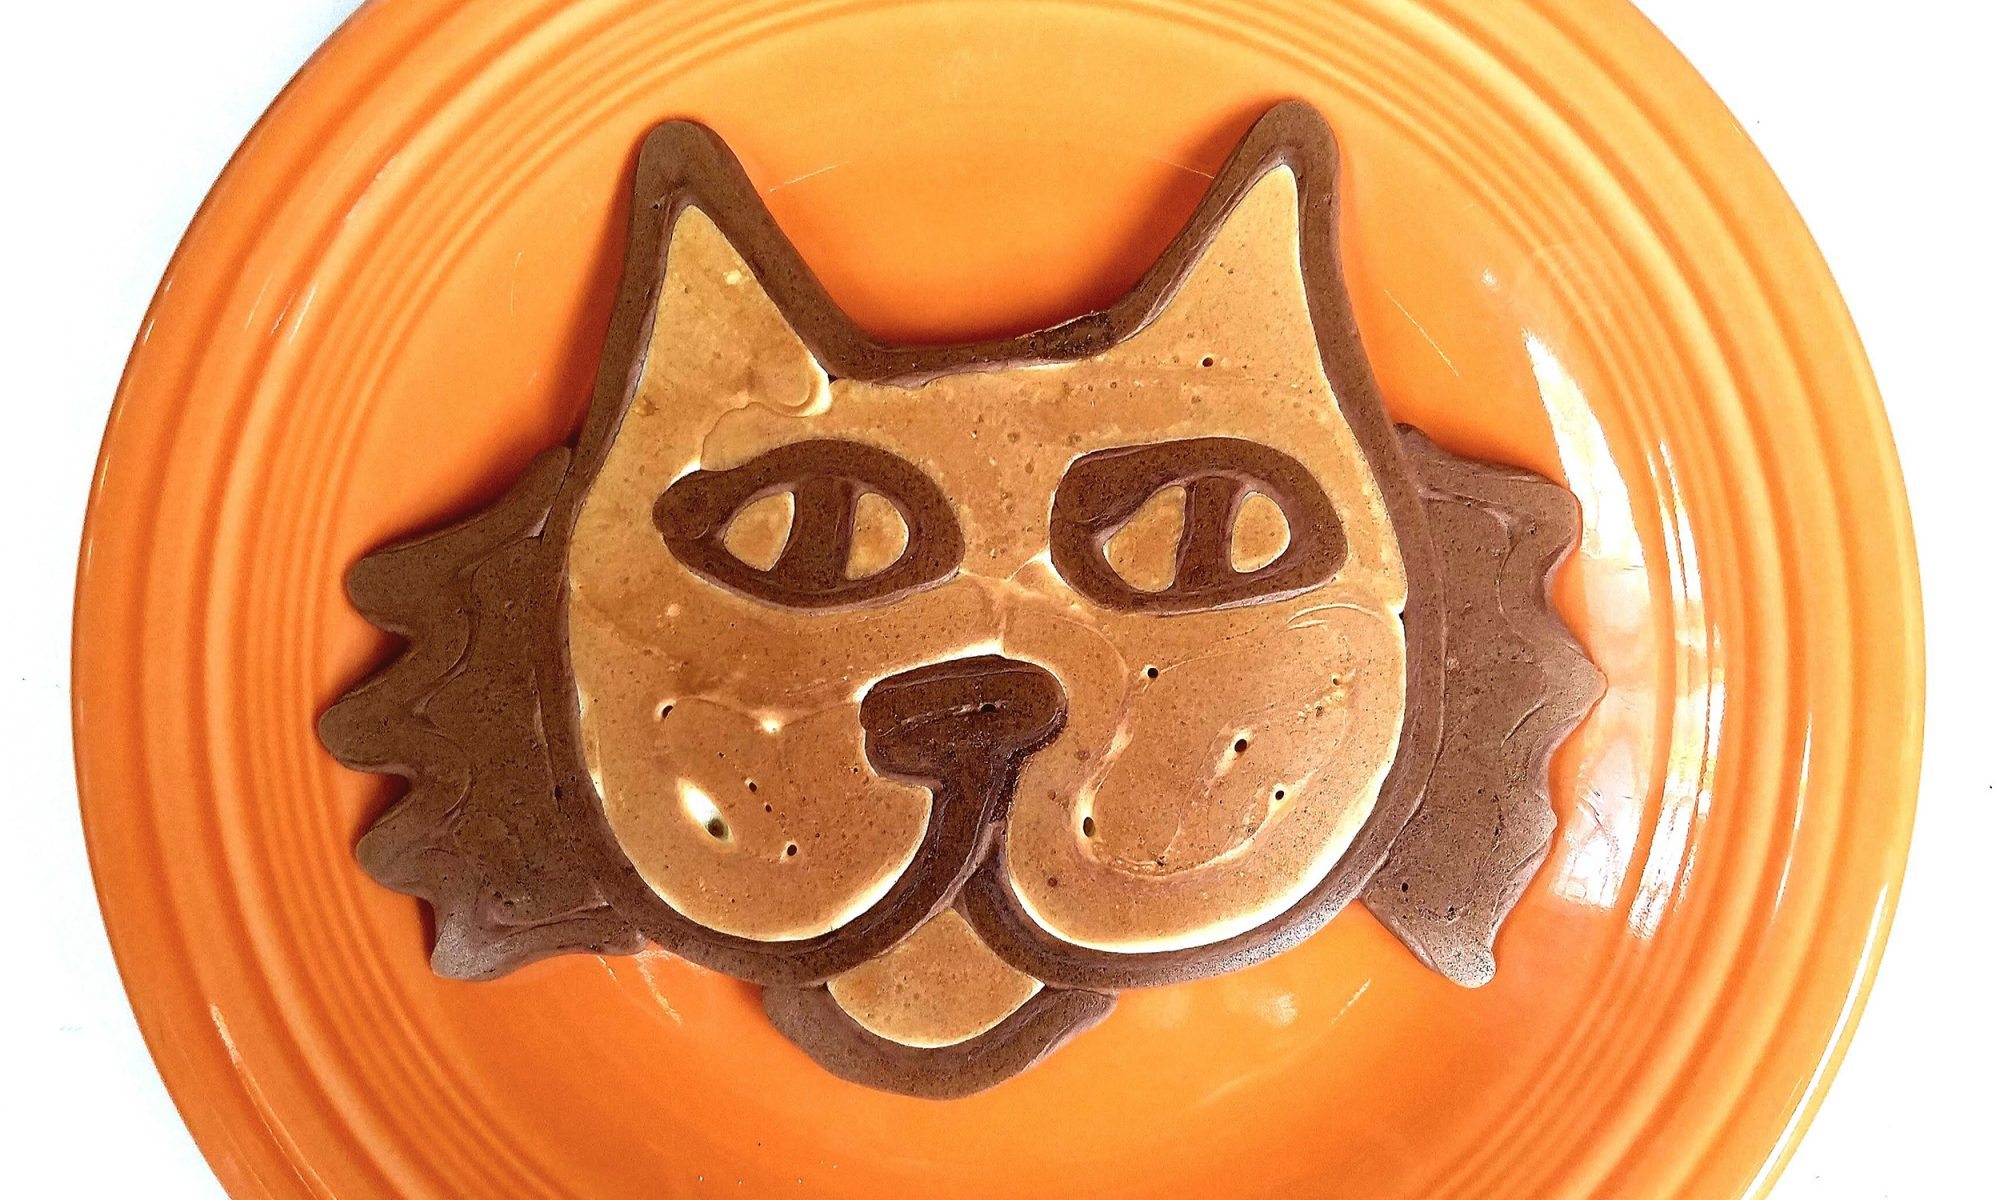 EC: The Art of Making Animal Pancakes